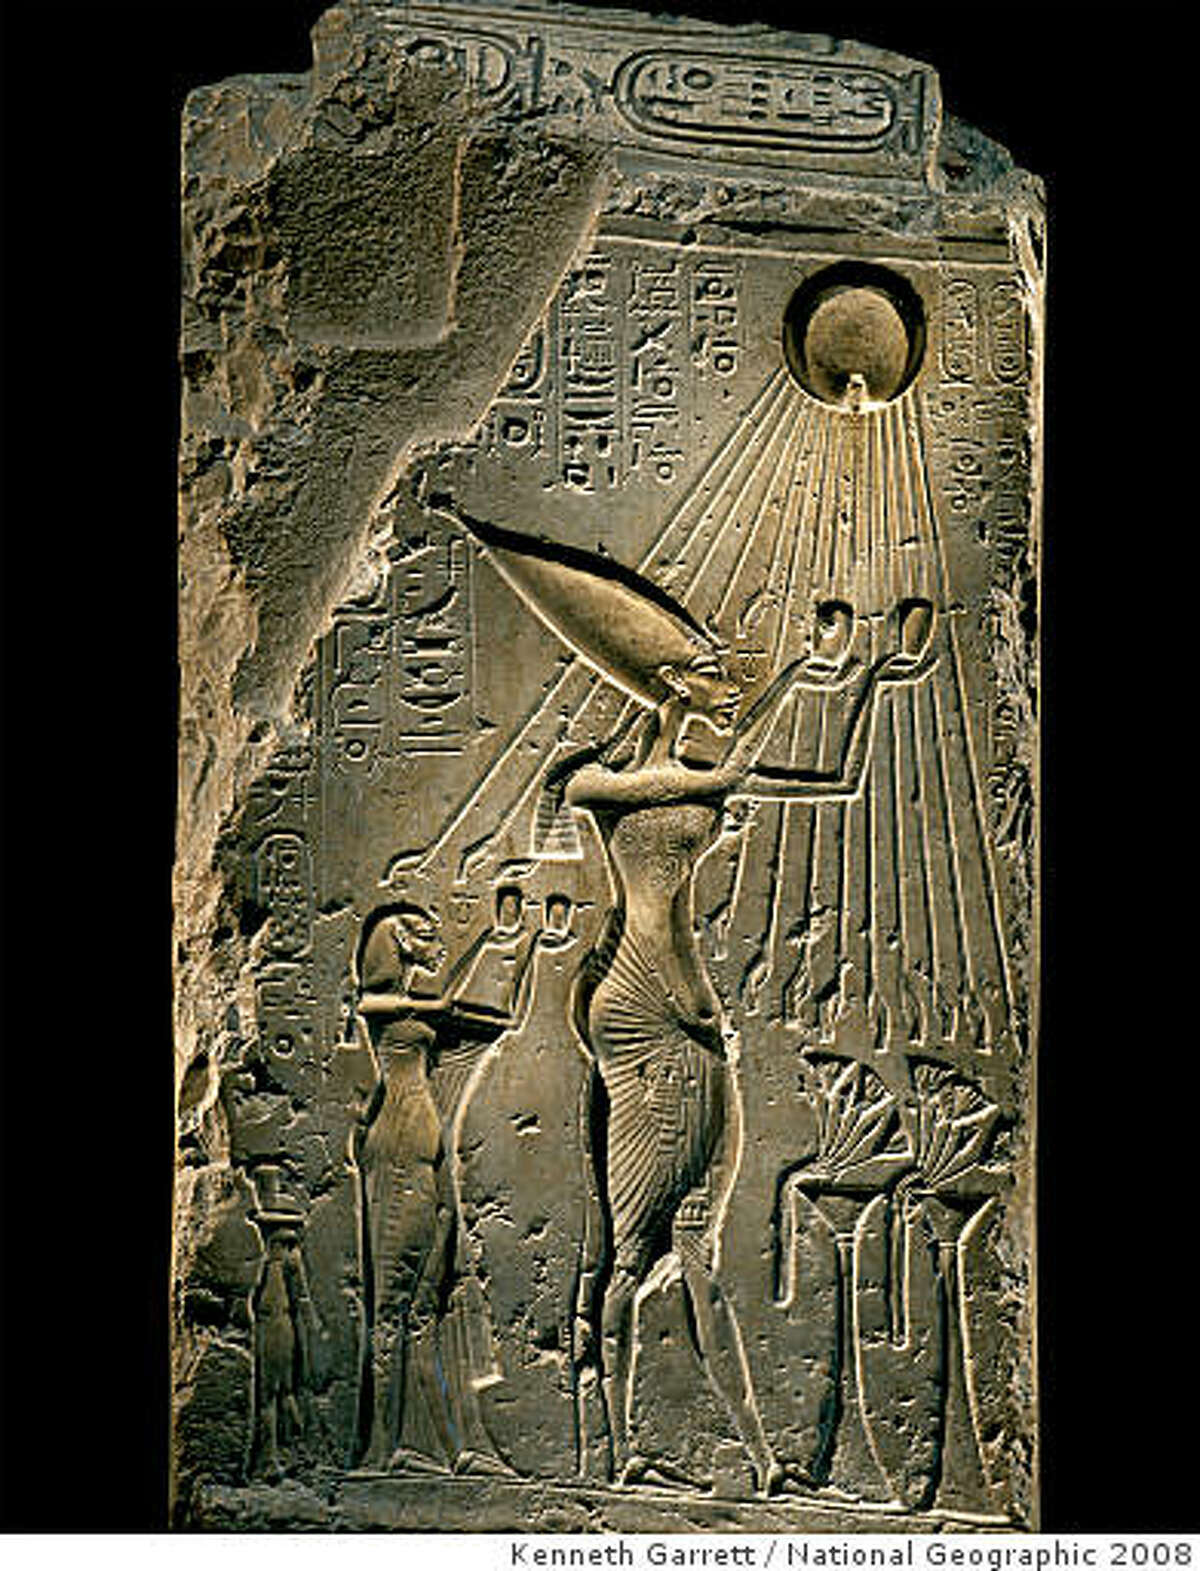 Tutankhamun and the Golden Age of the Pharaohs. Part of a Balustrade Depicting Akhenaten and Family under the Aten. Dynasty 18, reign of Akhenaten (1353-1336 BC). Crystalline limestone. Egyptian Museum, Cairo. FOR YOUR ONE-TIME EXCLUSIVE USE ONLY AS A TIE-IN WITH THE NATIONAL GEOGRAPHIC KING TUT EXHIBIT. IMAGE MAY NOT BE CROPPED OR ALTERED IN ANY WAY. �2008 Kenneth Garrett / National Geographic